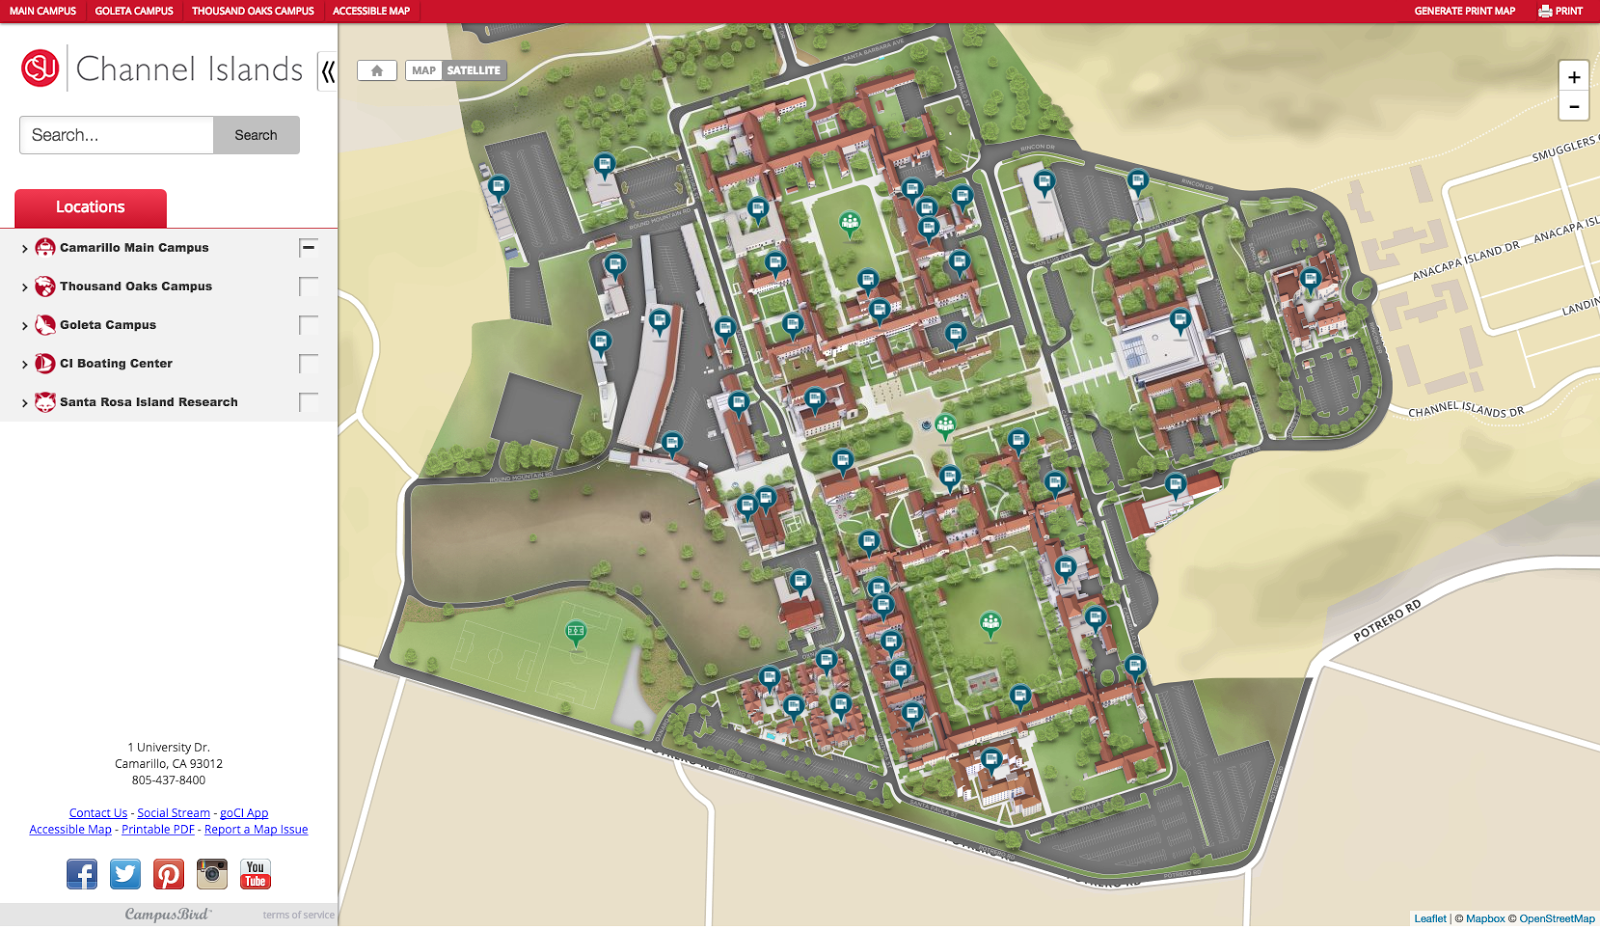 CSUCI Launches new interactive campus map | CI Web Services Blog on